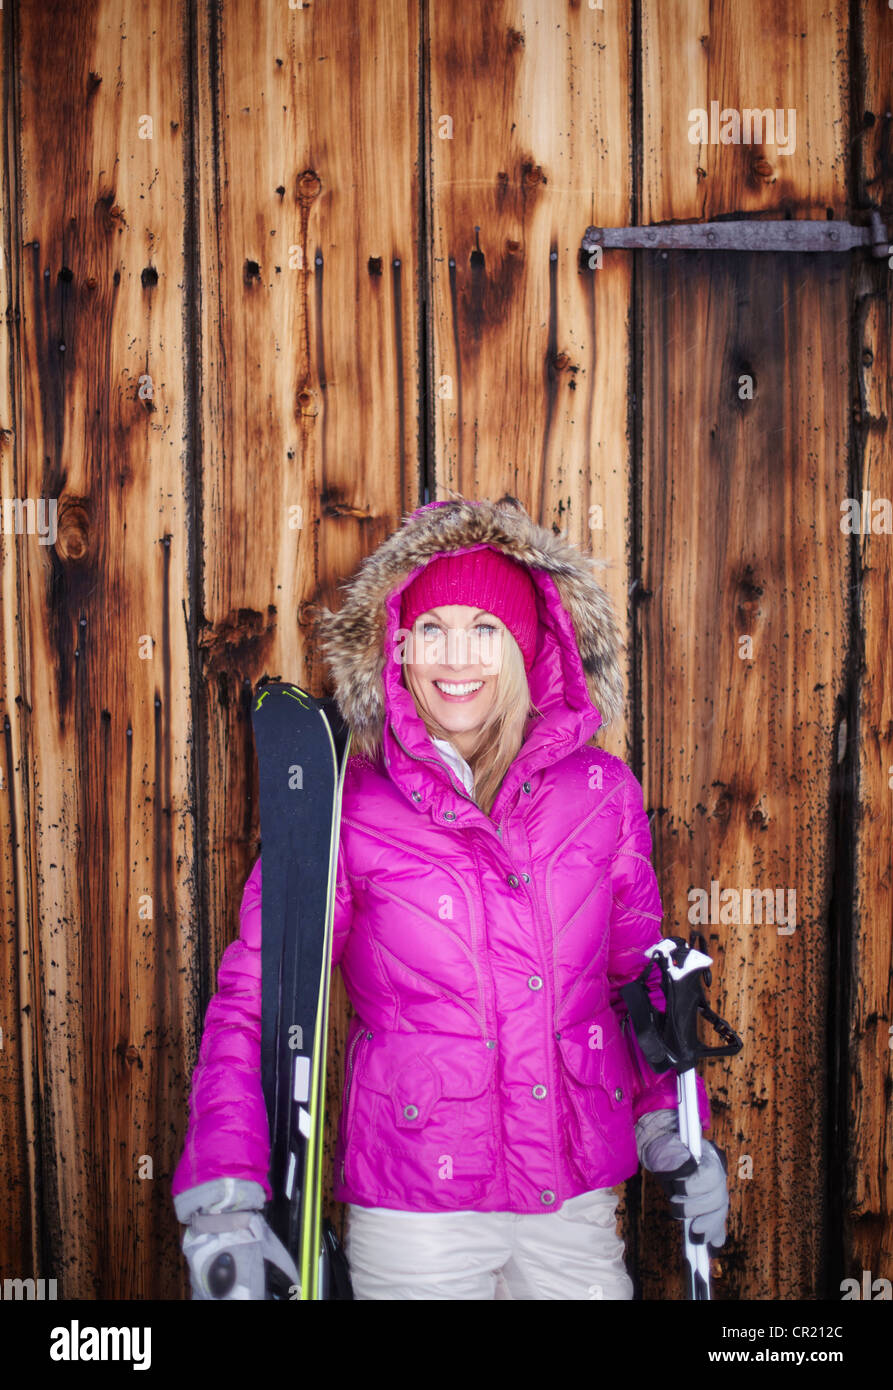 Woman standing with skis and poles - Stock Image